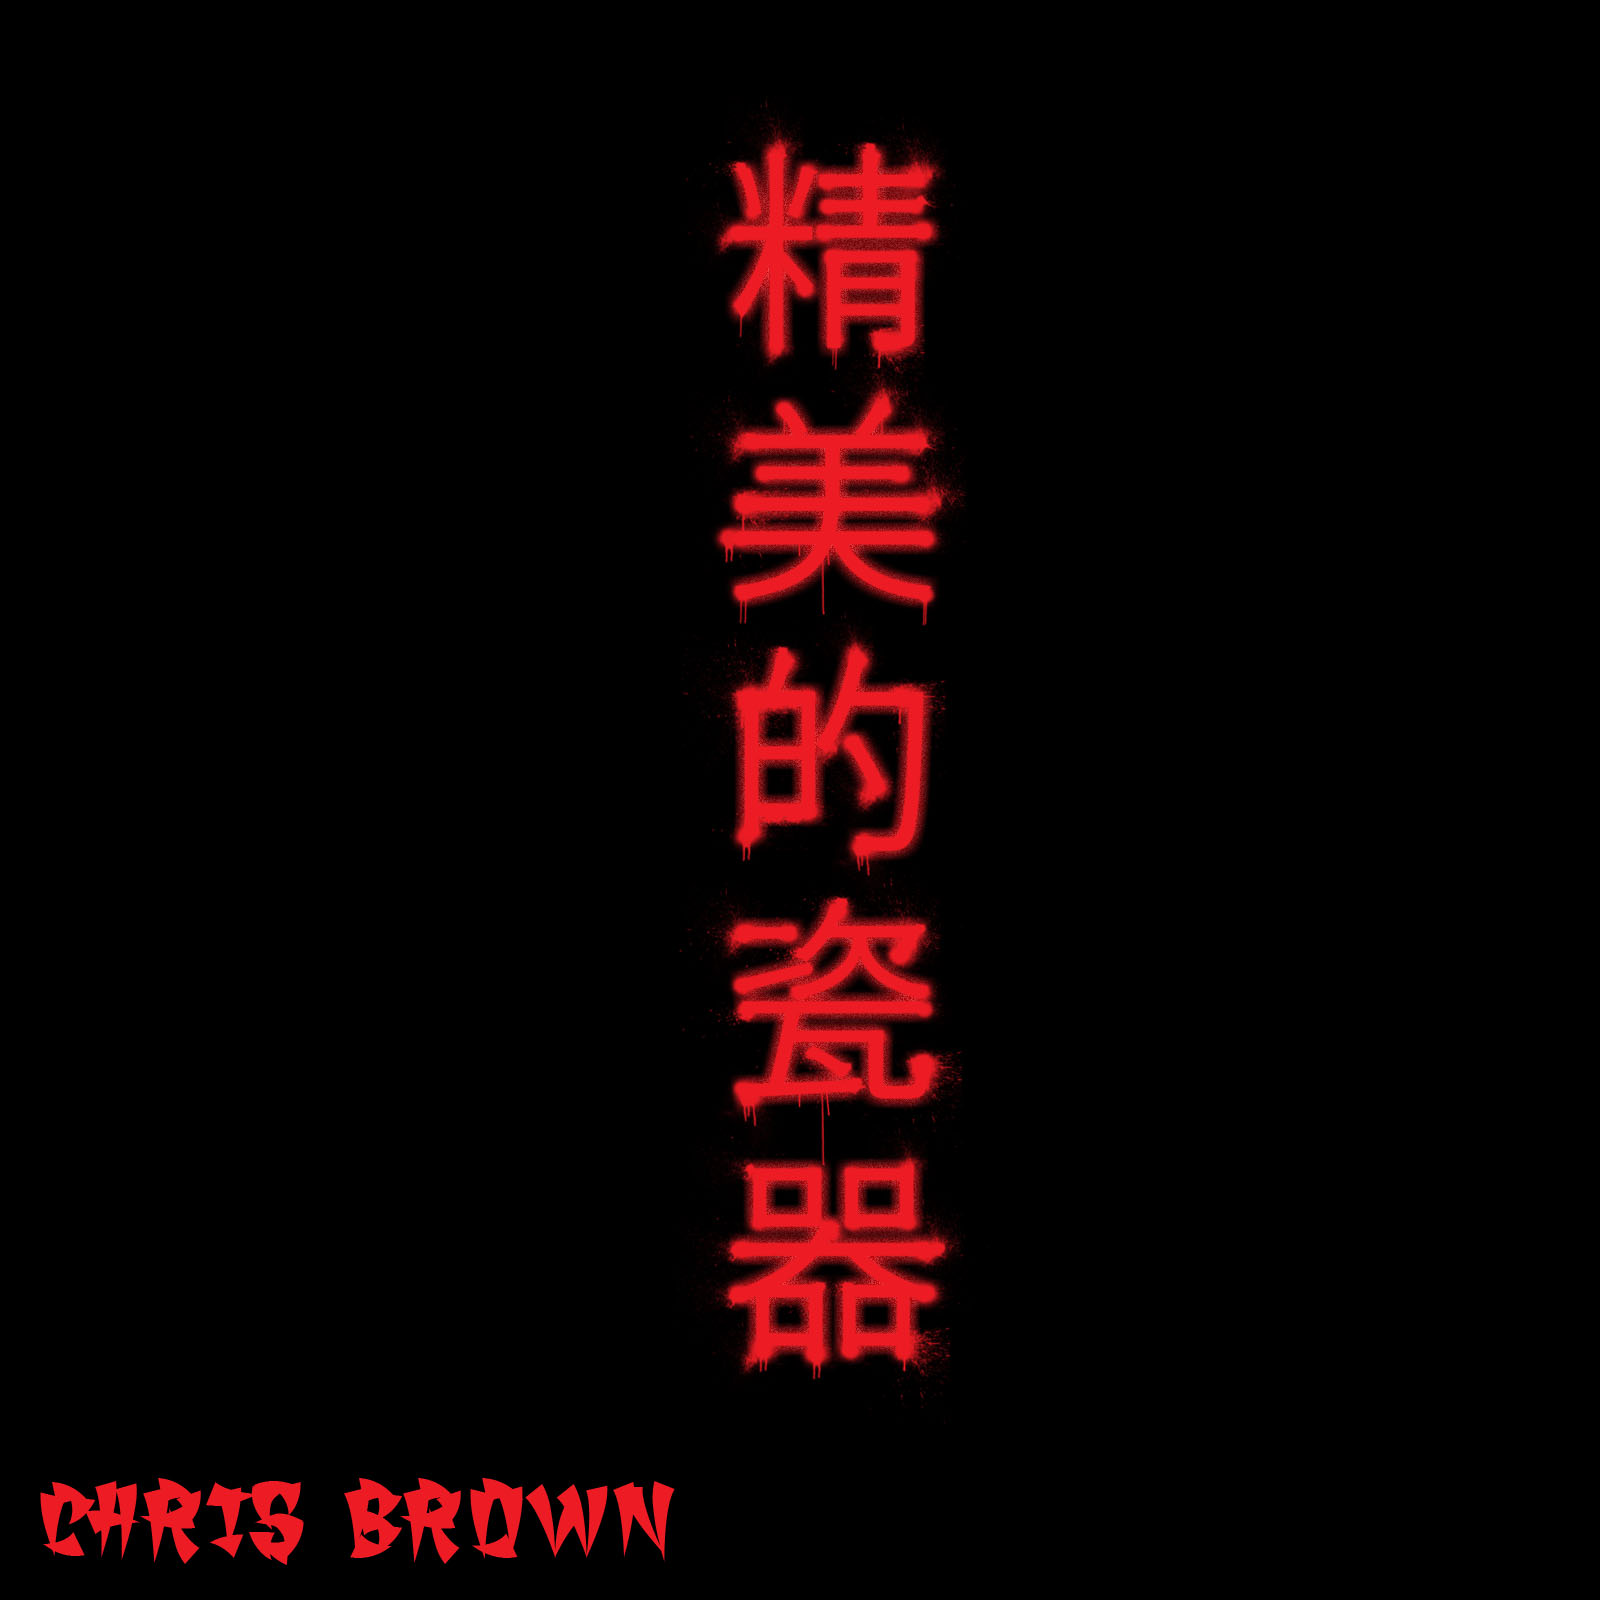 http://thatgrapejuice.net/wp-content/uploads/2013/04/chris-brown-fine-china.jpg